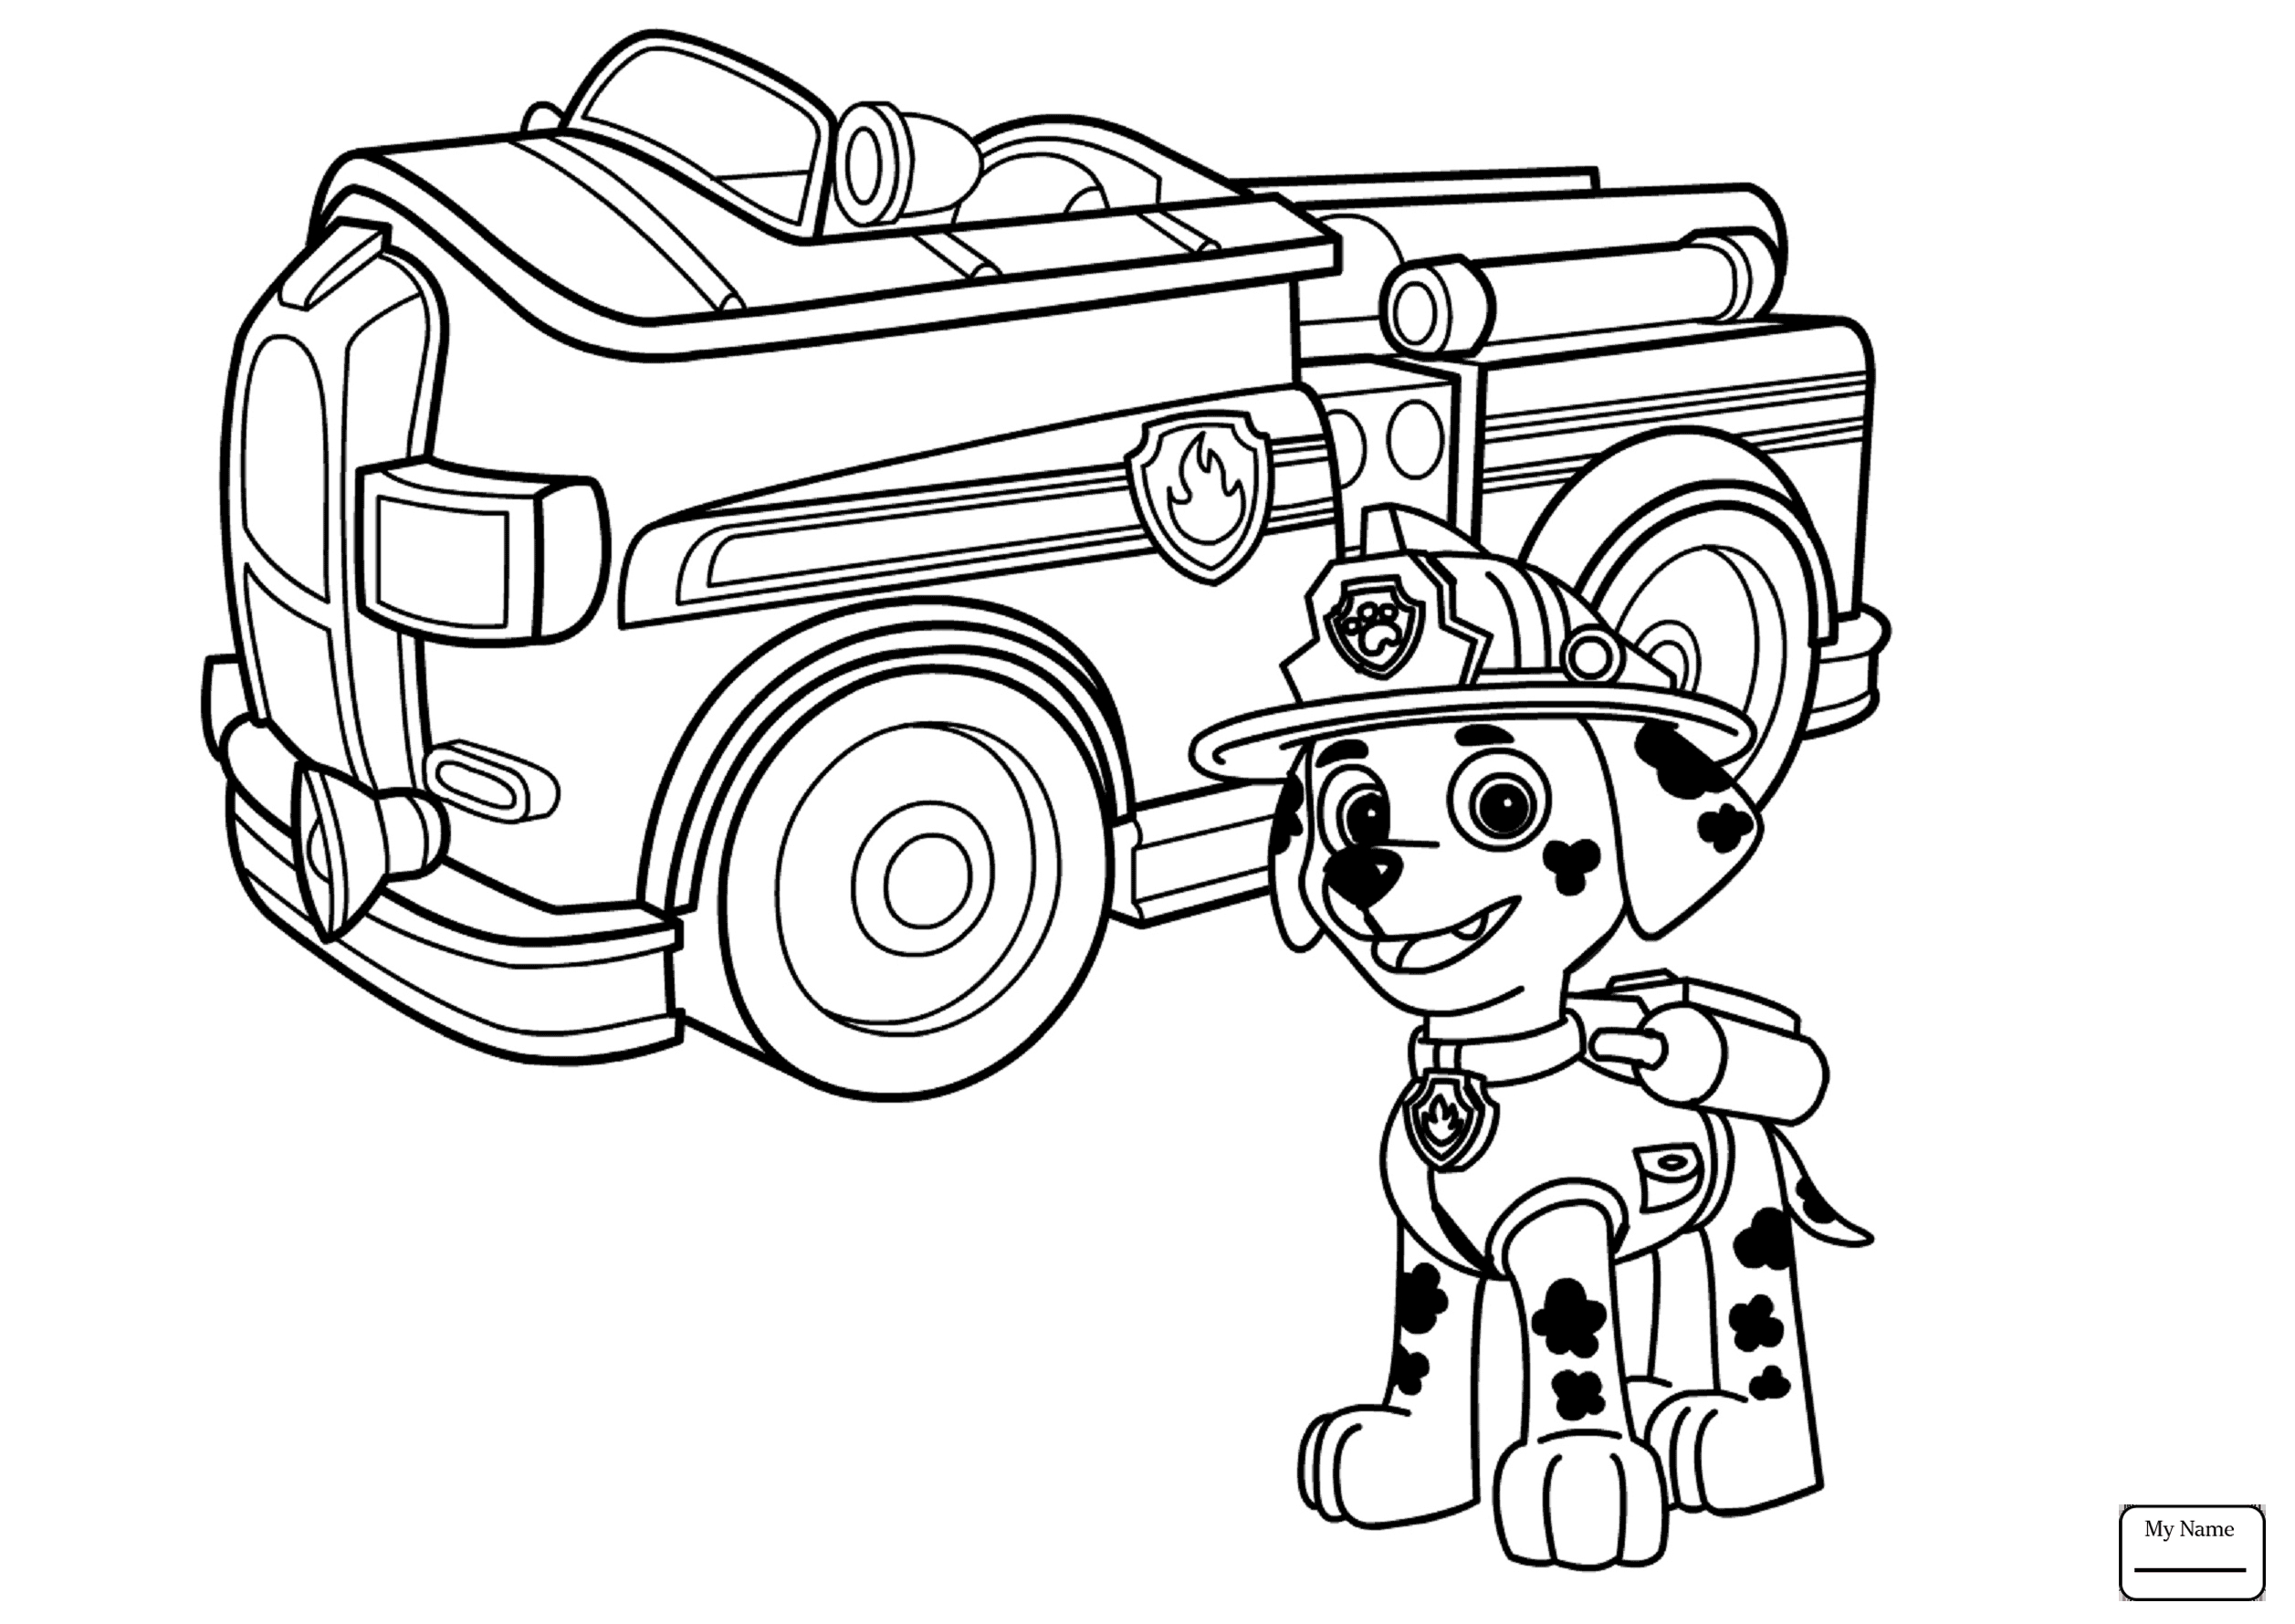 paw patrol pictures to print paw patrol coloring pages printable free coloring sheets print to patrol pictures paw